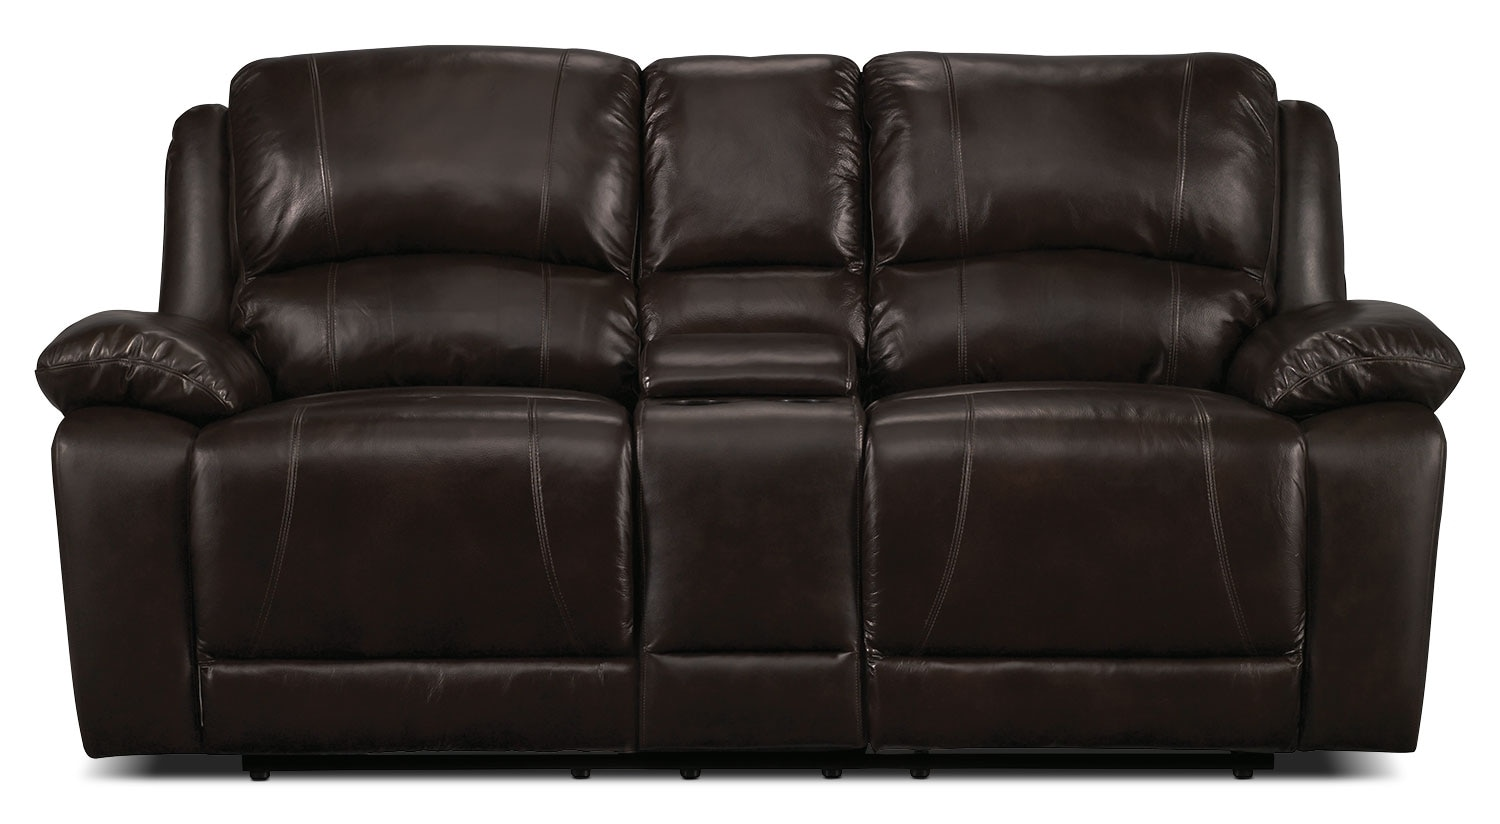 Living Room Furniture - Marco Genuine Leather Reclining Loveseat - Chocolate